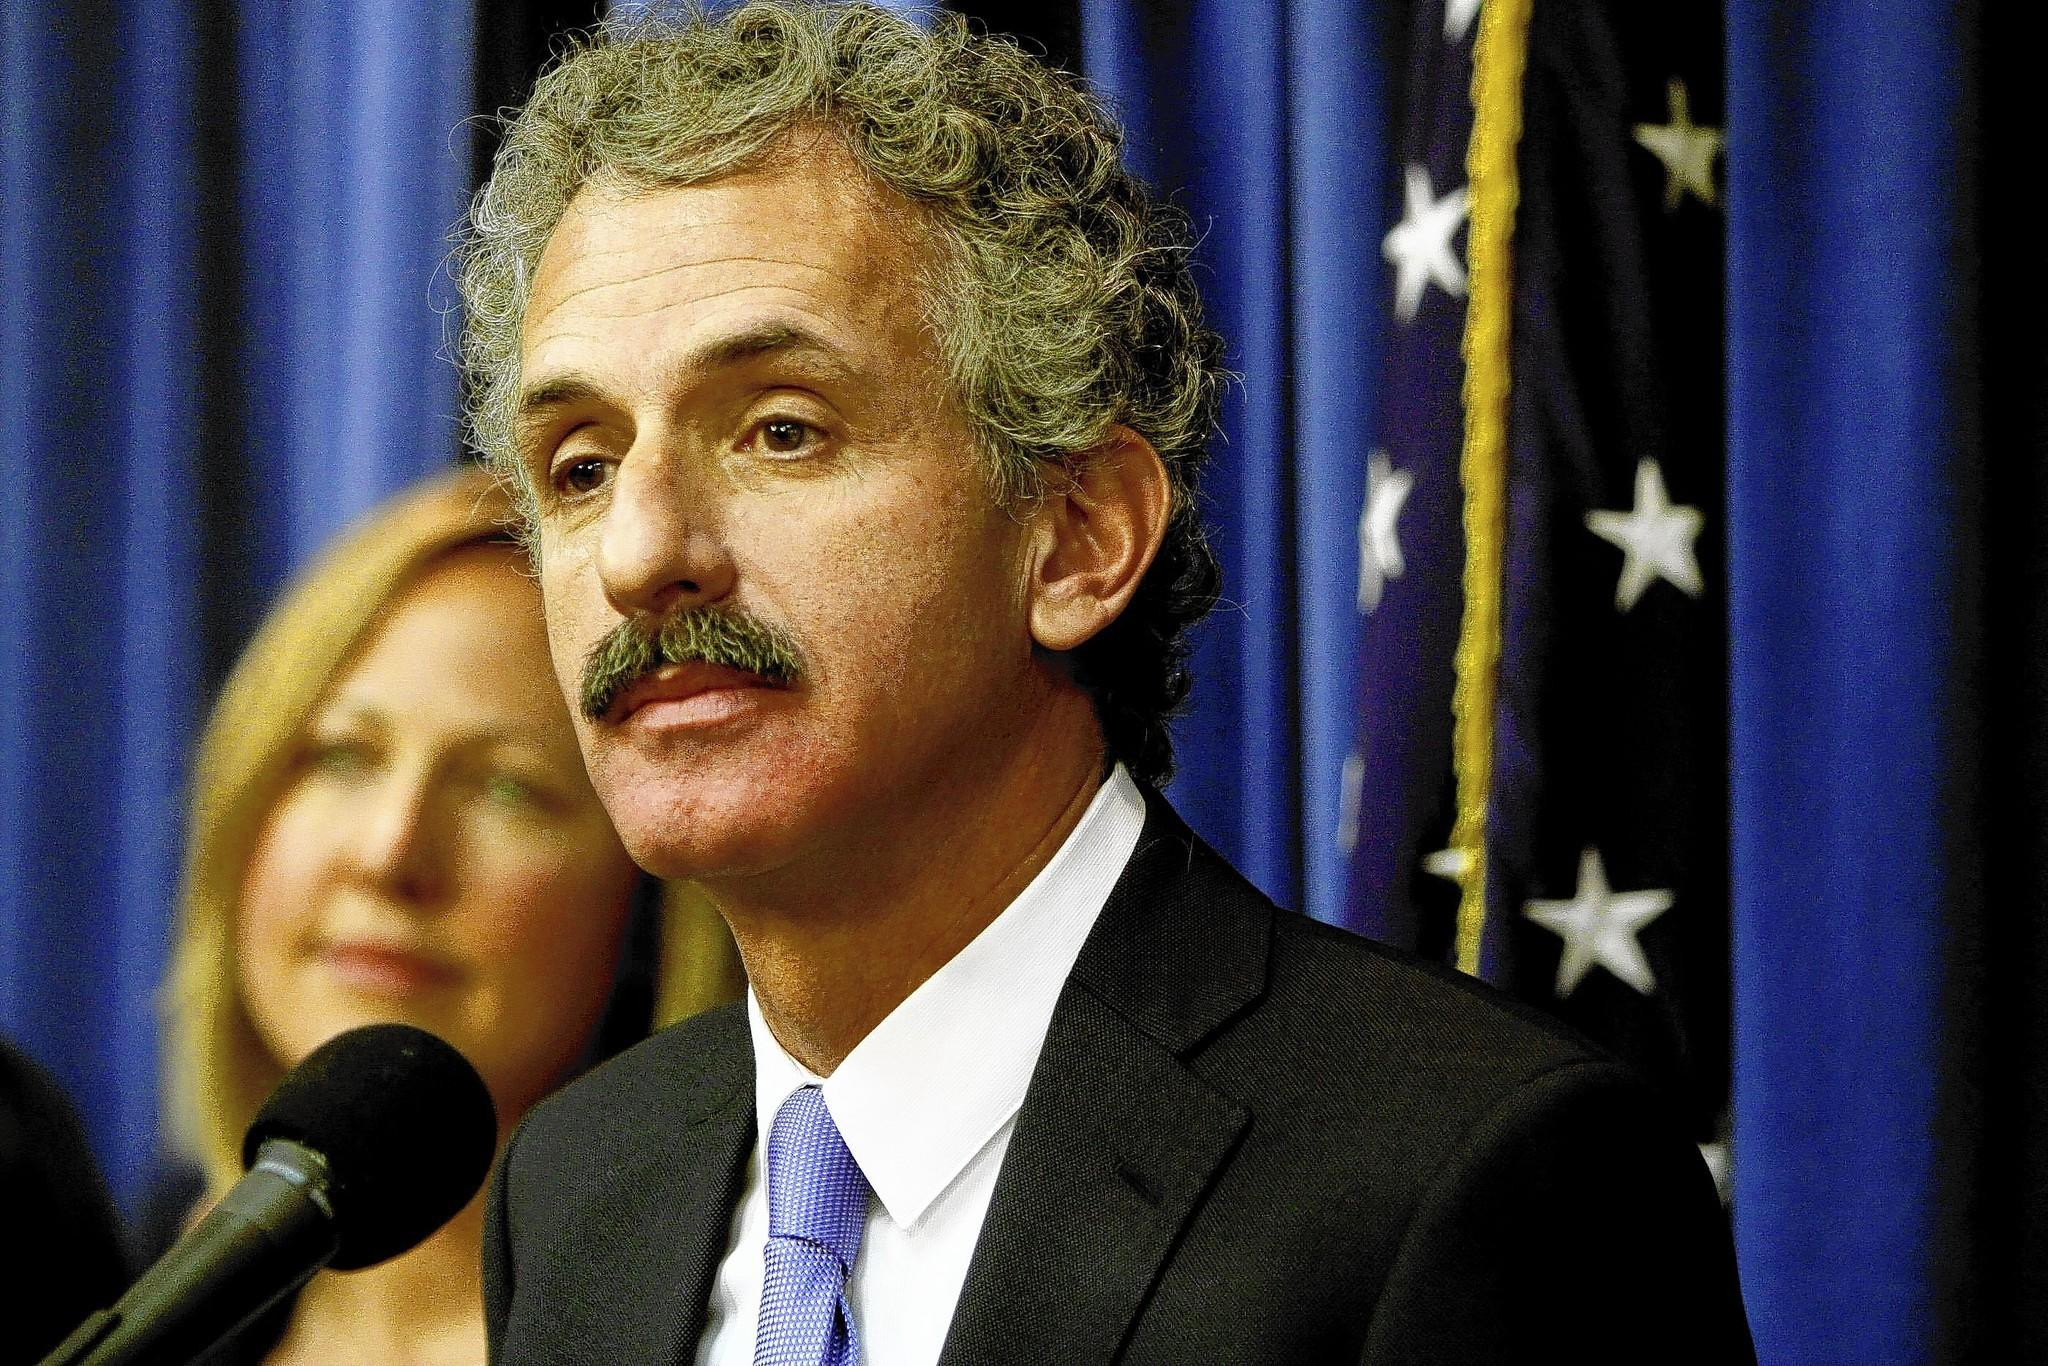 L.A. City Atty. Mike Feuer says it is still impossible to know exactly how many marijuana shops are open in the city. But he says the number of pot shops that have filed renewals for taxes is much lower than the estimated number of medical marijuana businesses open before Proposition D.